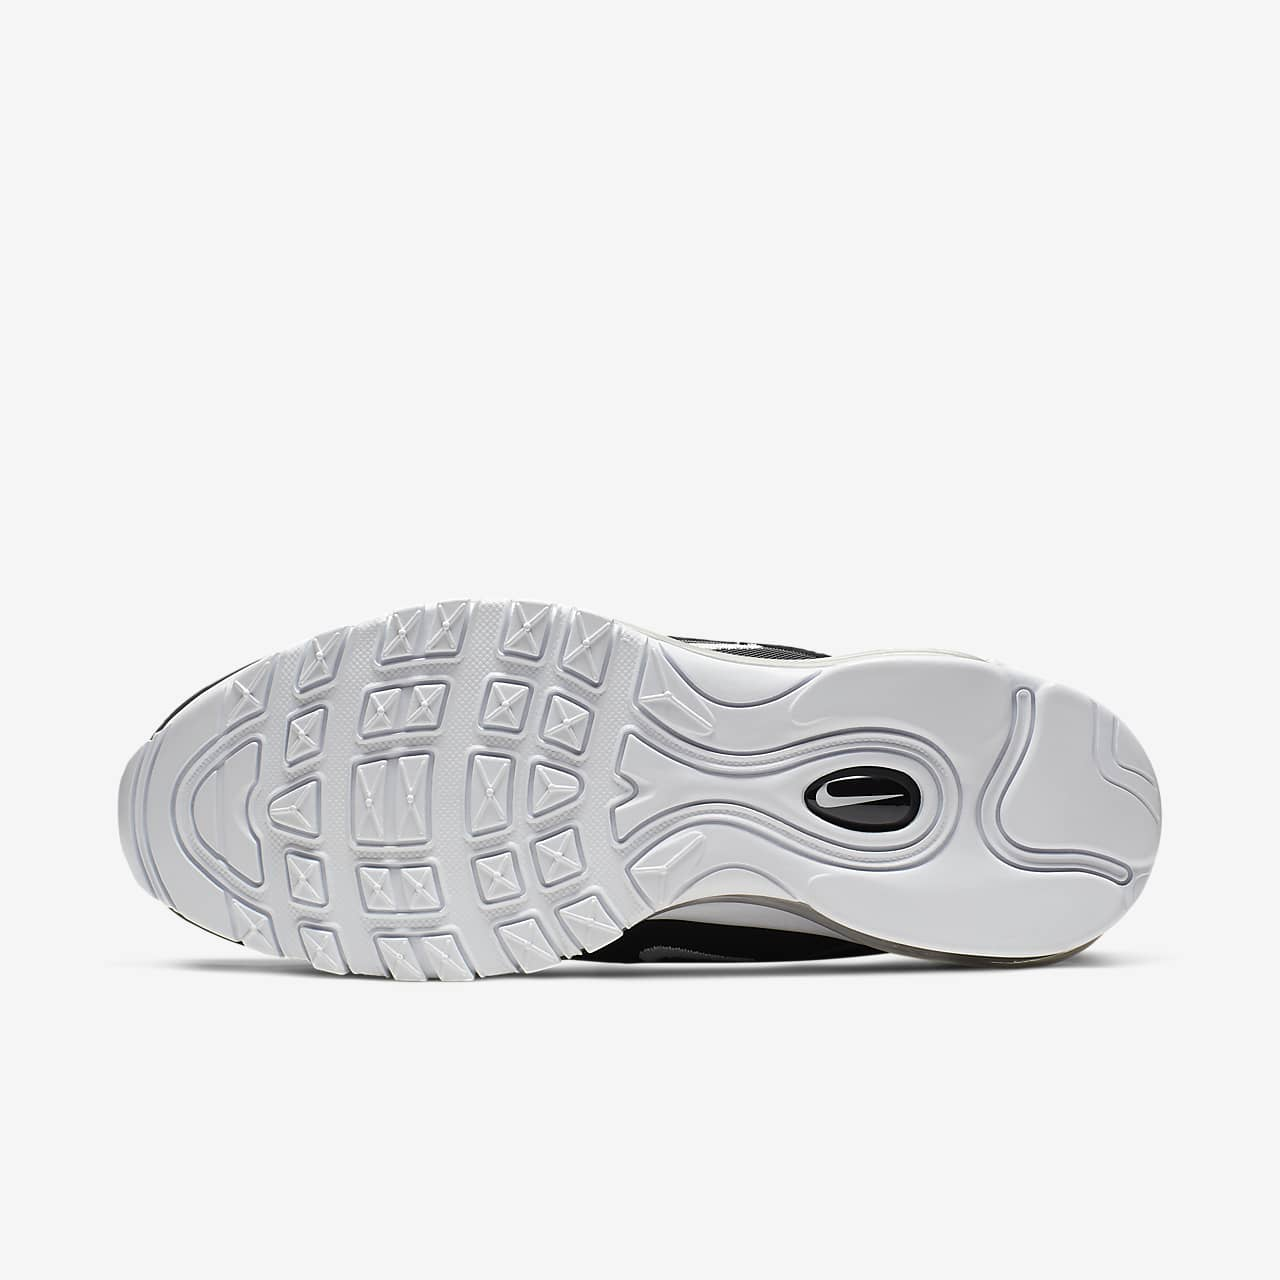 Nike Air Max 97 White Snakeskin 921826 100